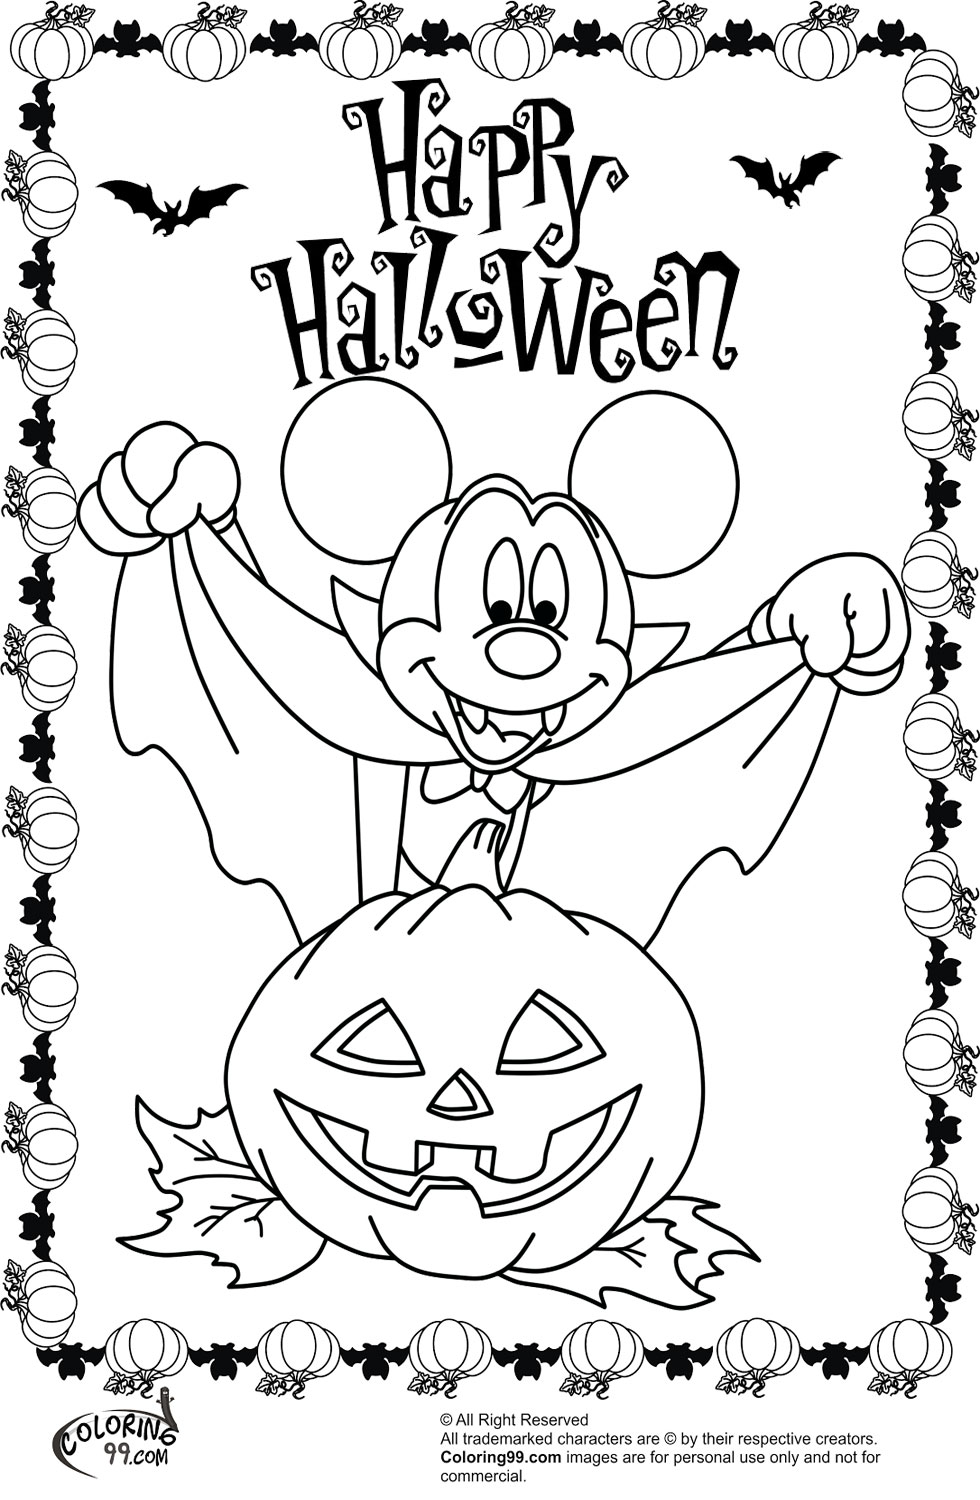 Minnie and Mickey Mouse Coloring Pages for Halloween